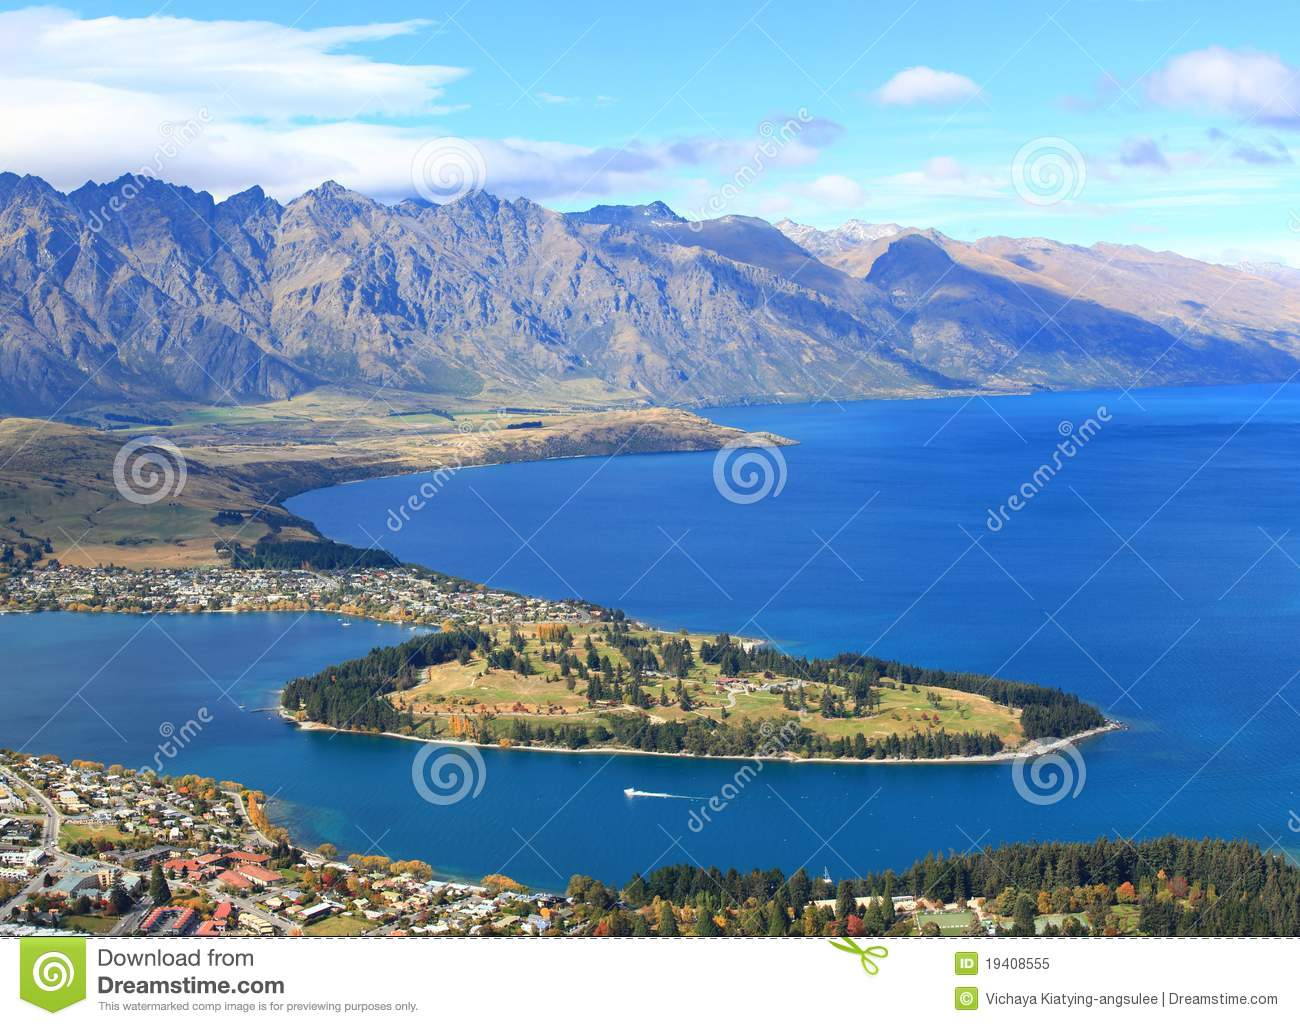 Teorema landscape design queenstown nz for Landscaping courses nz